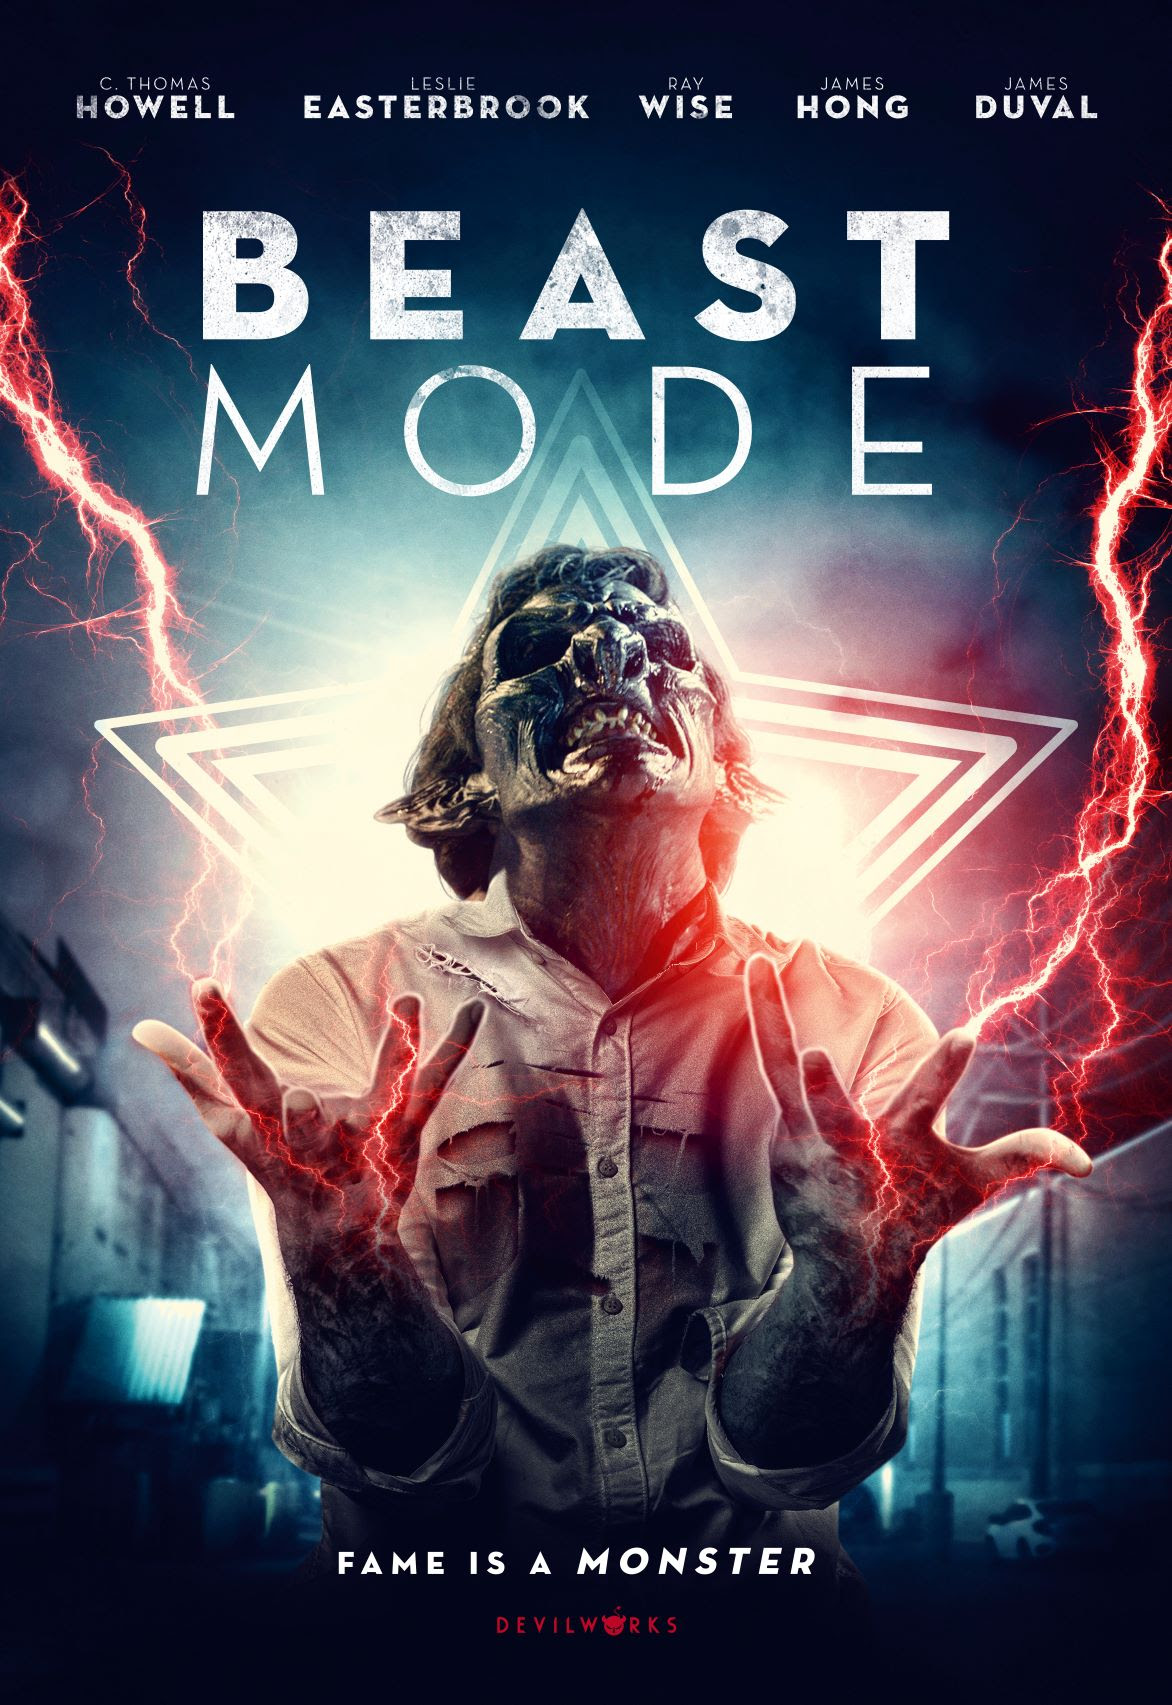 James Duval, C. Thomas Howell and Ray Wise Star in Monster Movie 'Beast Mode' [Trailer]